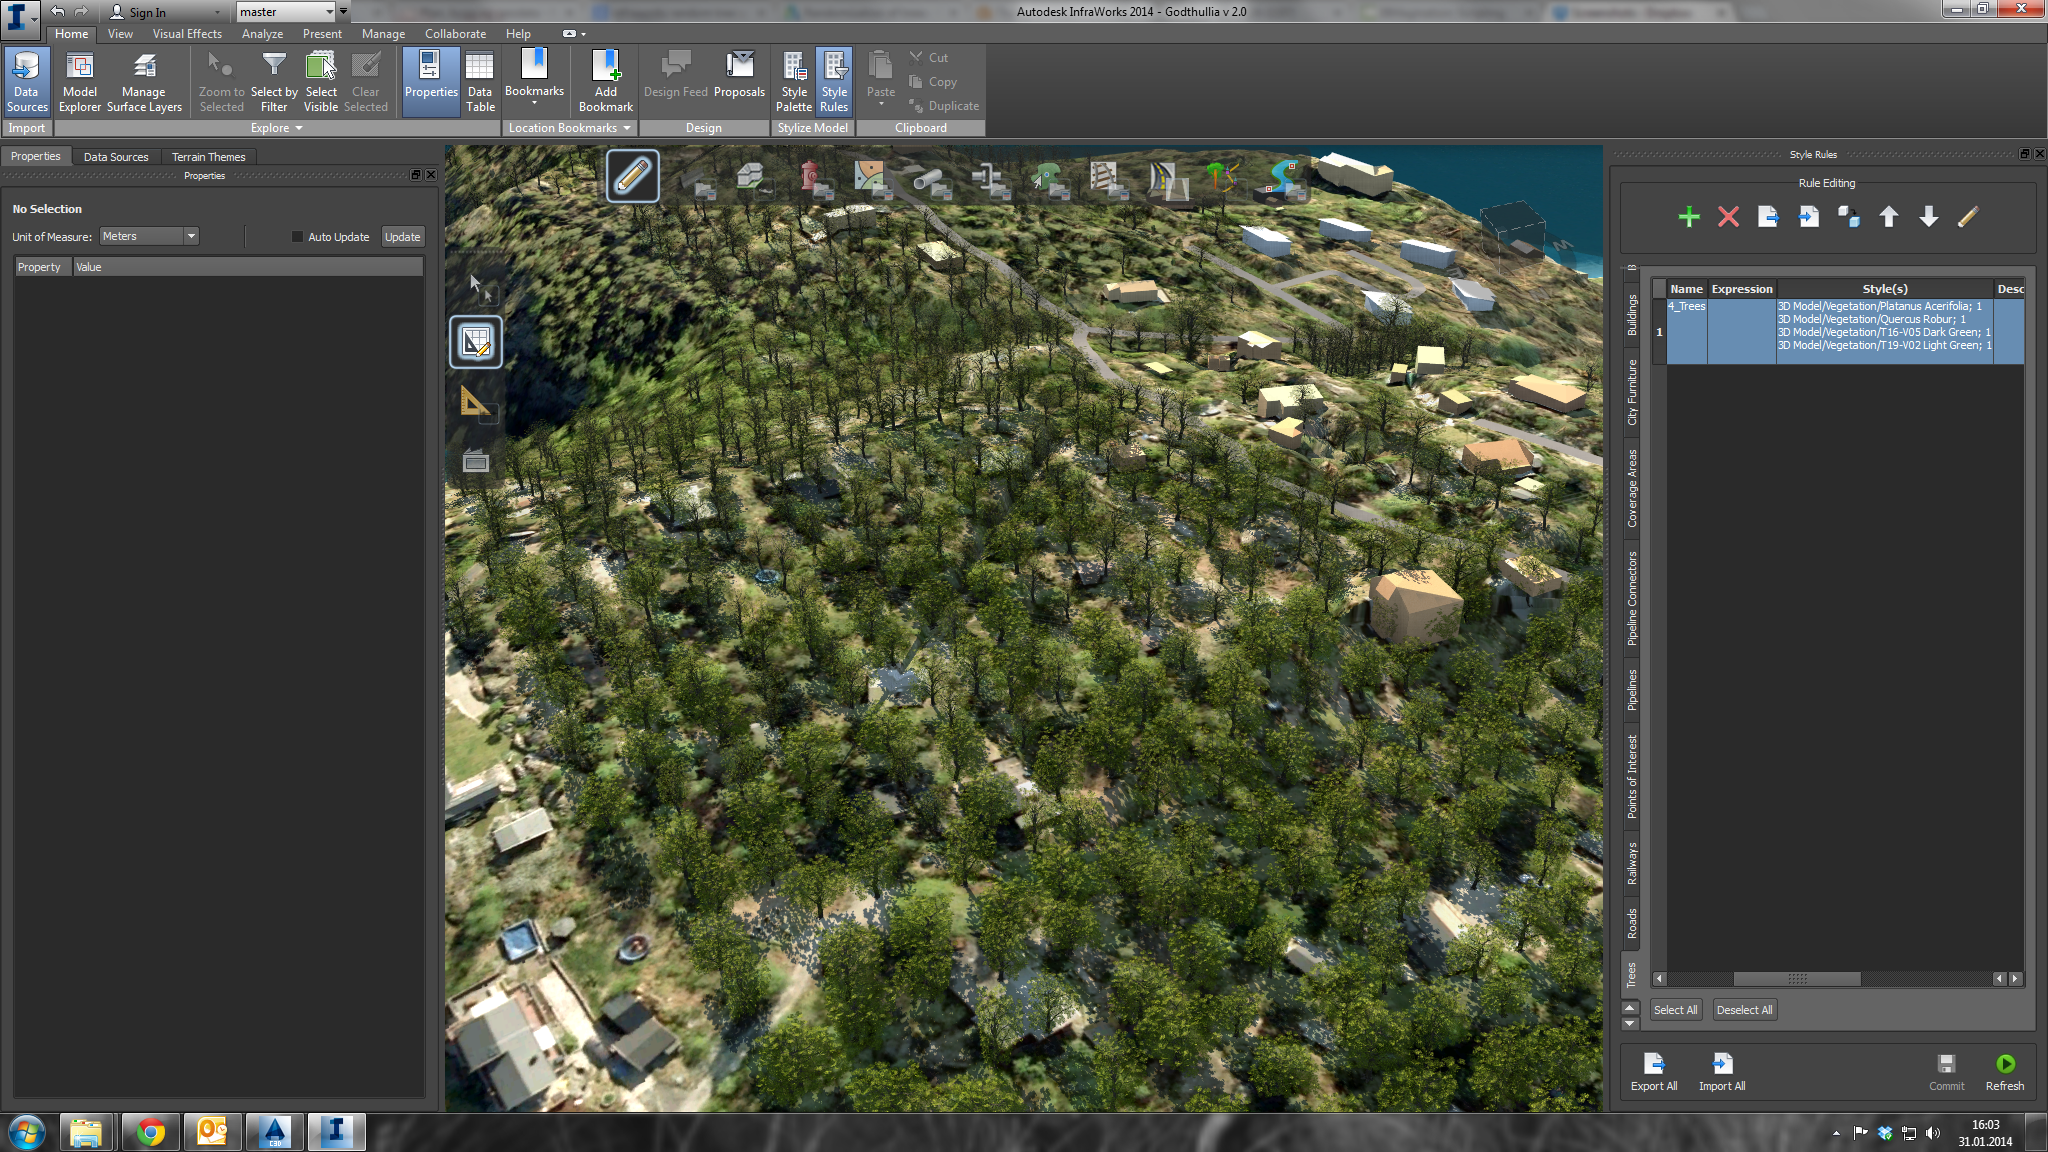 Infraworks – Randomising trees in a forest area | Daniel